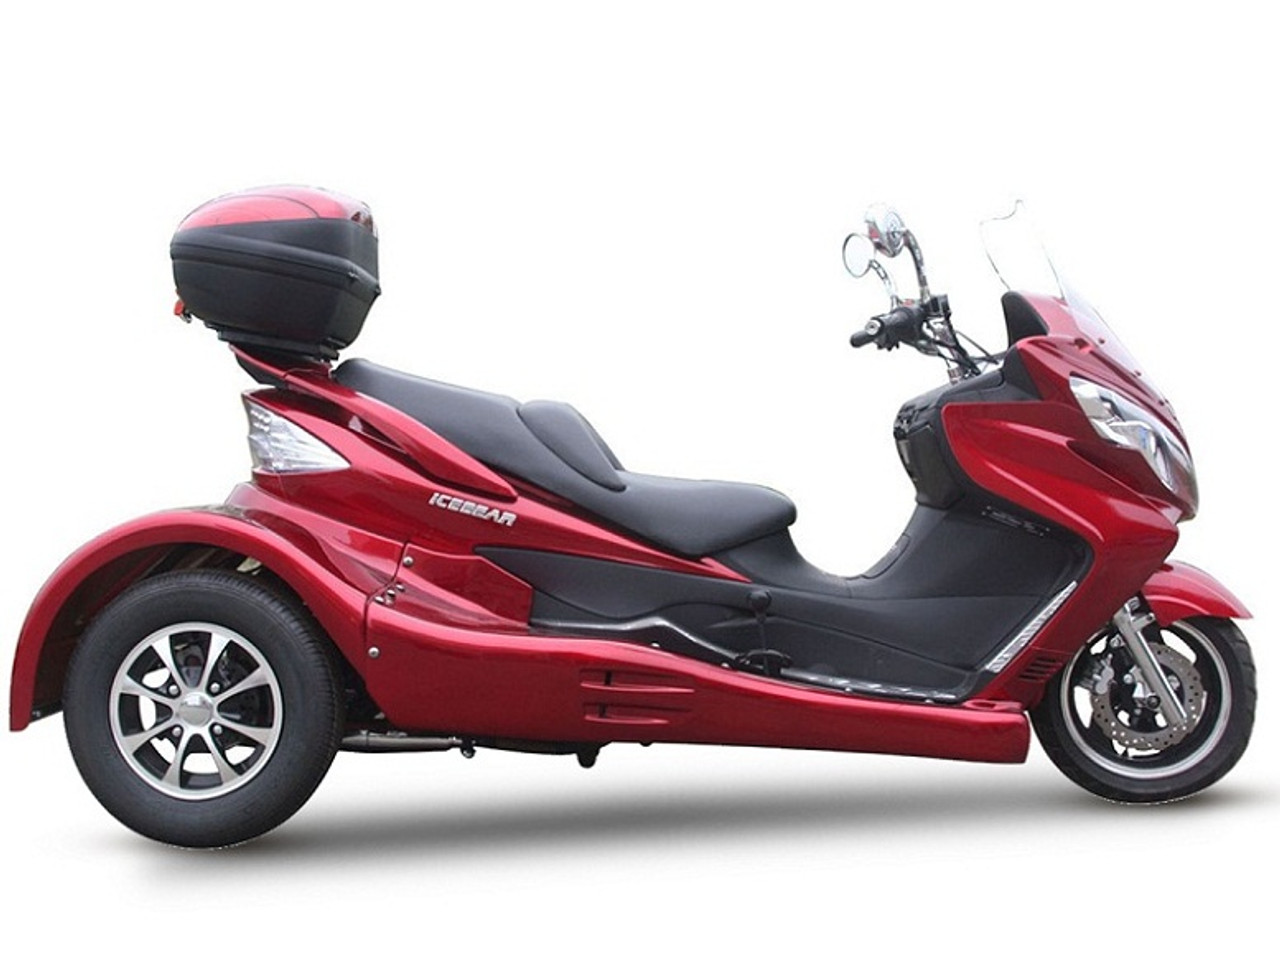 ICE BEAR ZODIAC (PST300-19) 300CC TRIKE AUTOMATIC WITH REVERSE